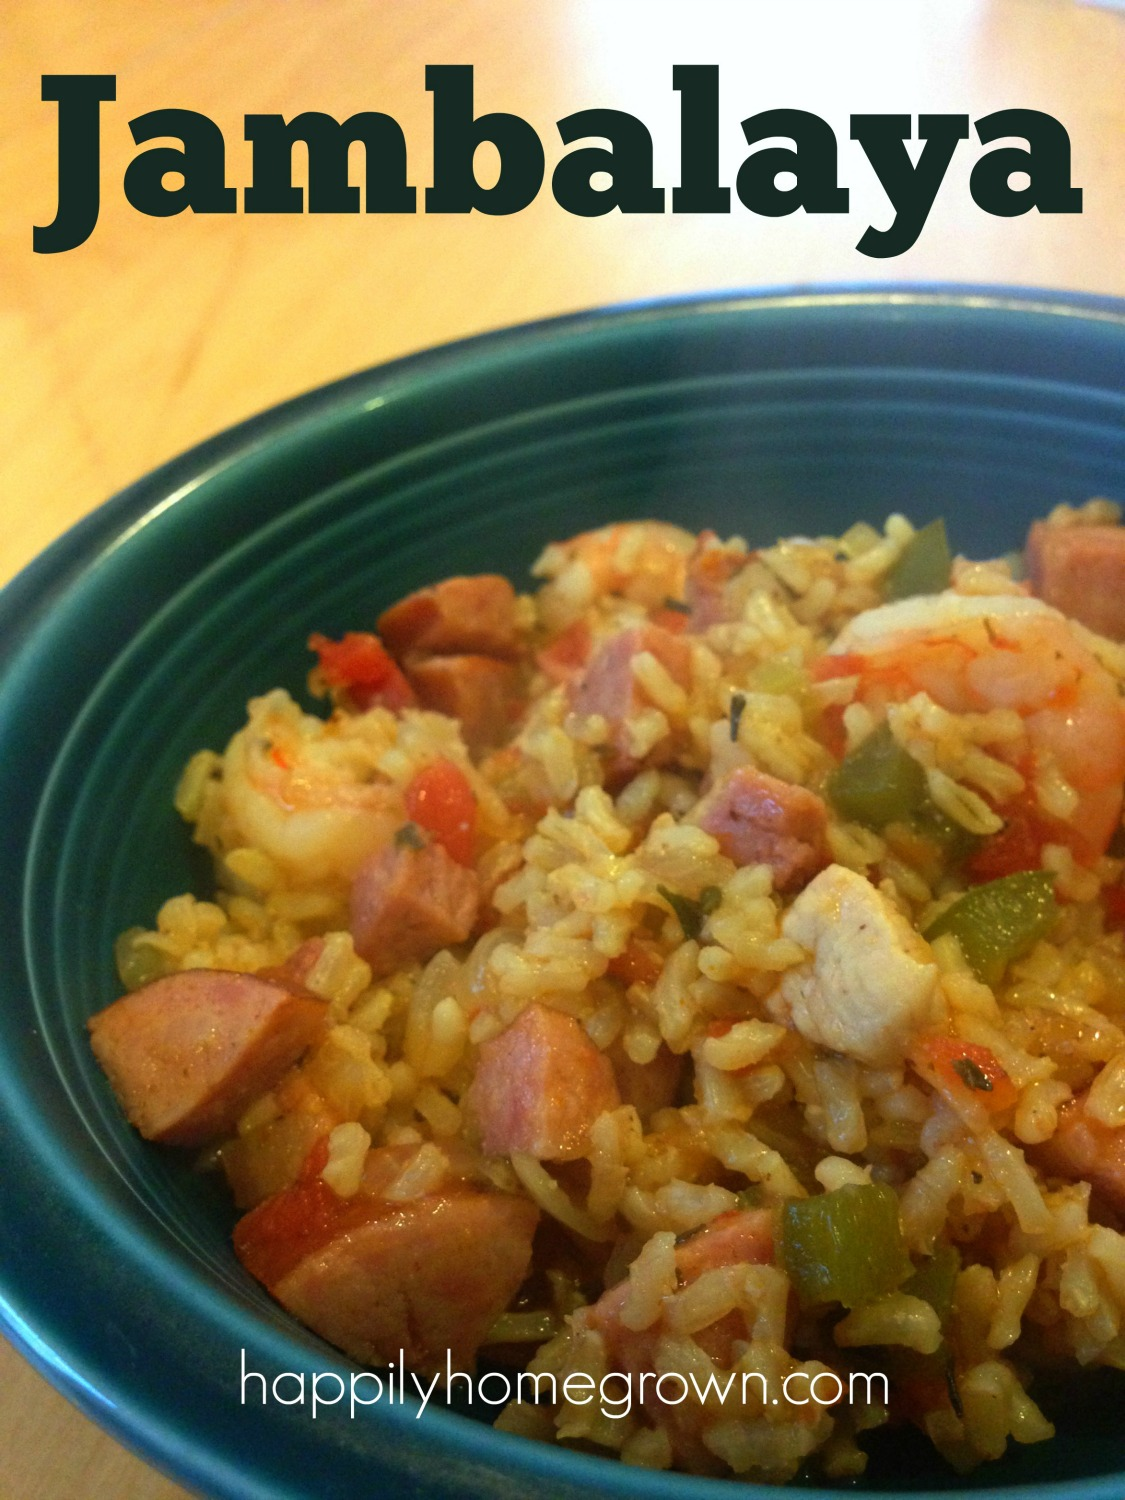 My Jambalaya has big flavors without the heat. A perfect mix of chicken, pork, shrimp, trinity, and rice that has the whole family asking for more.